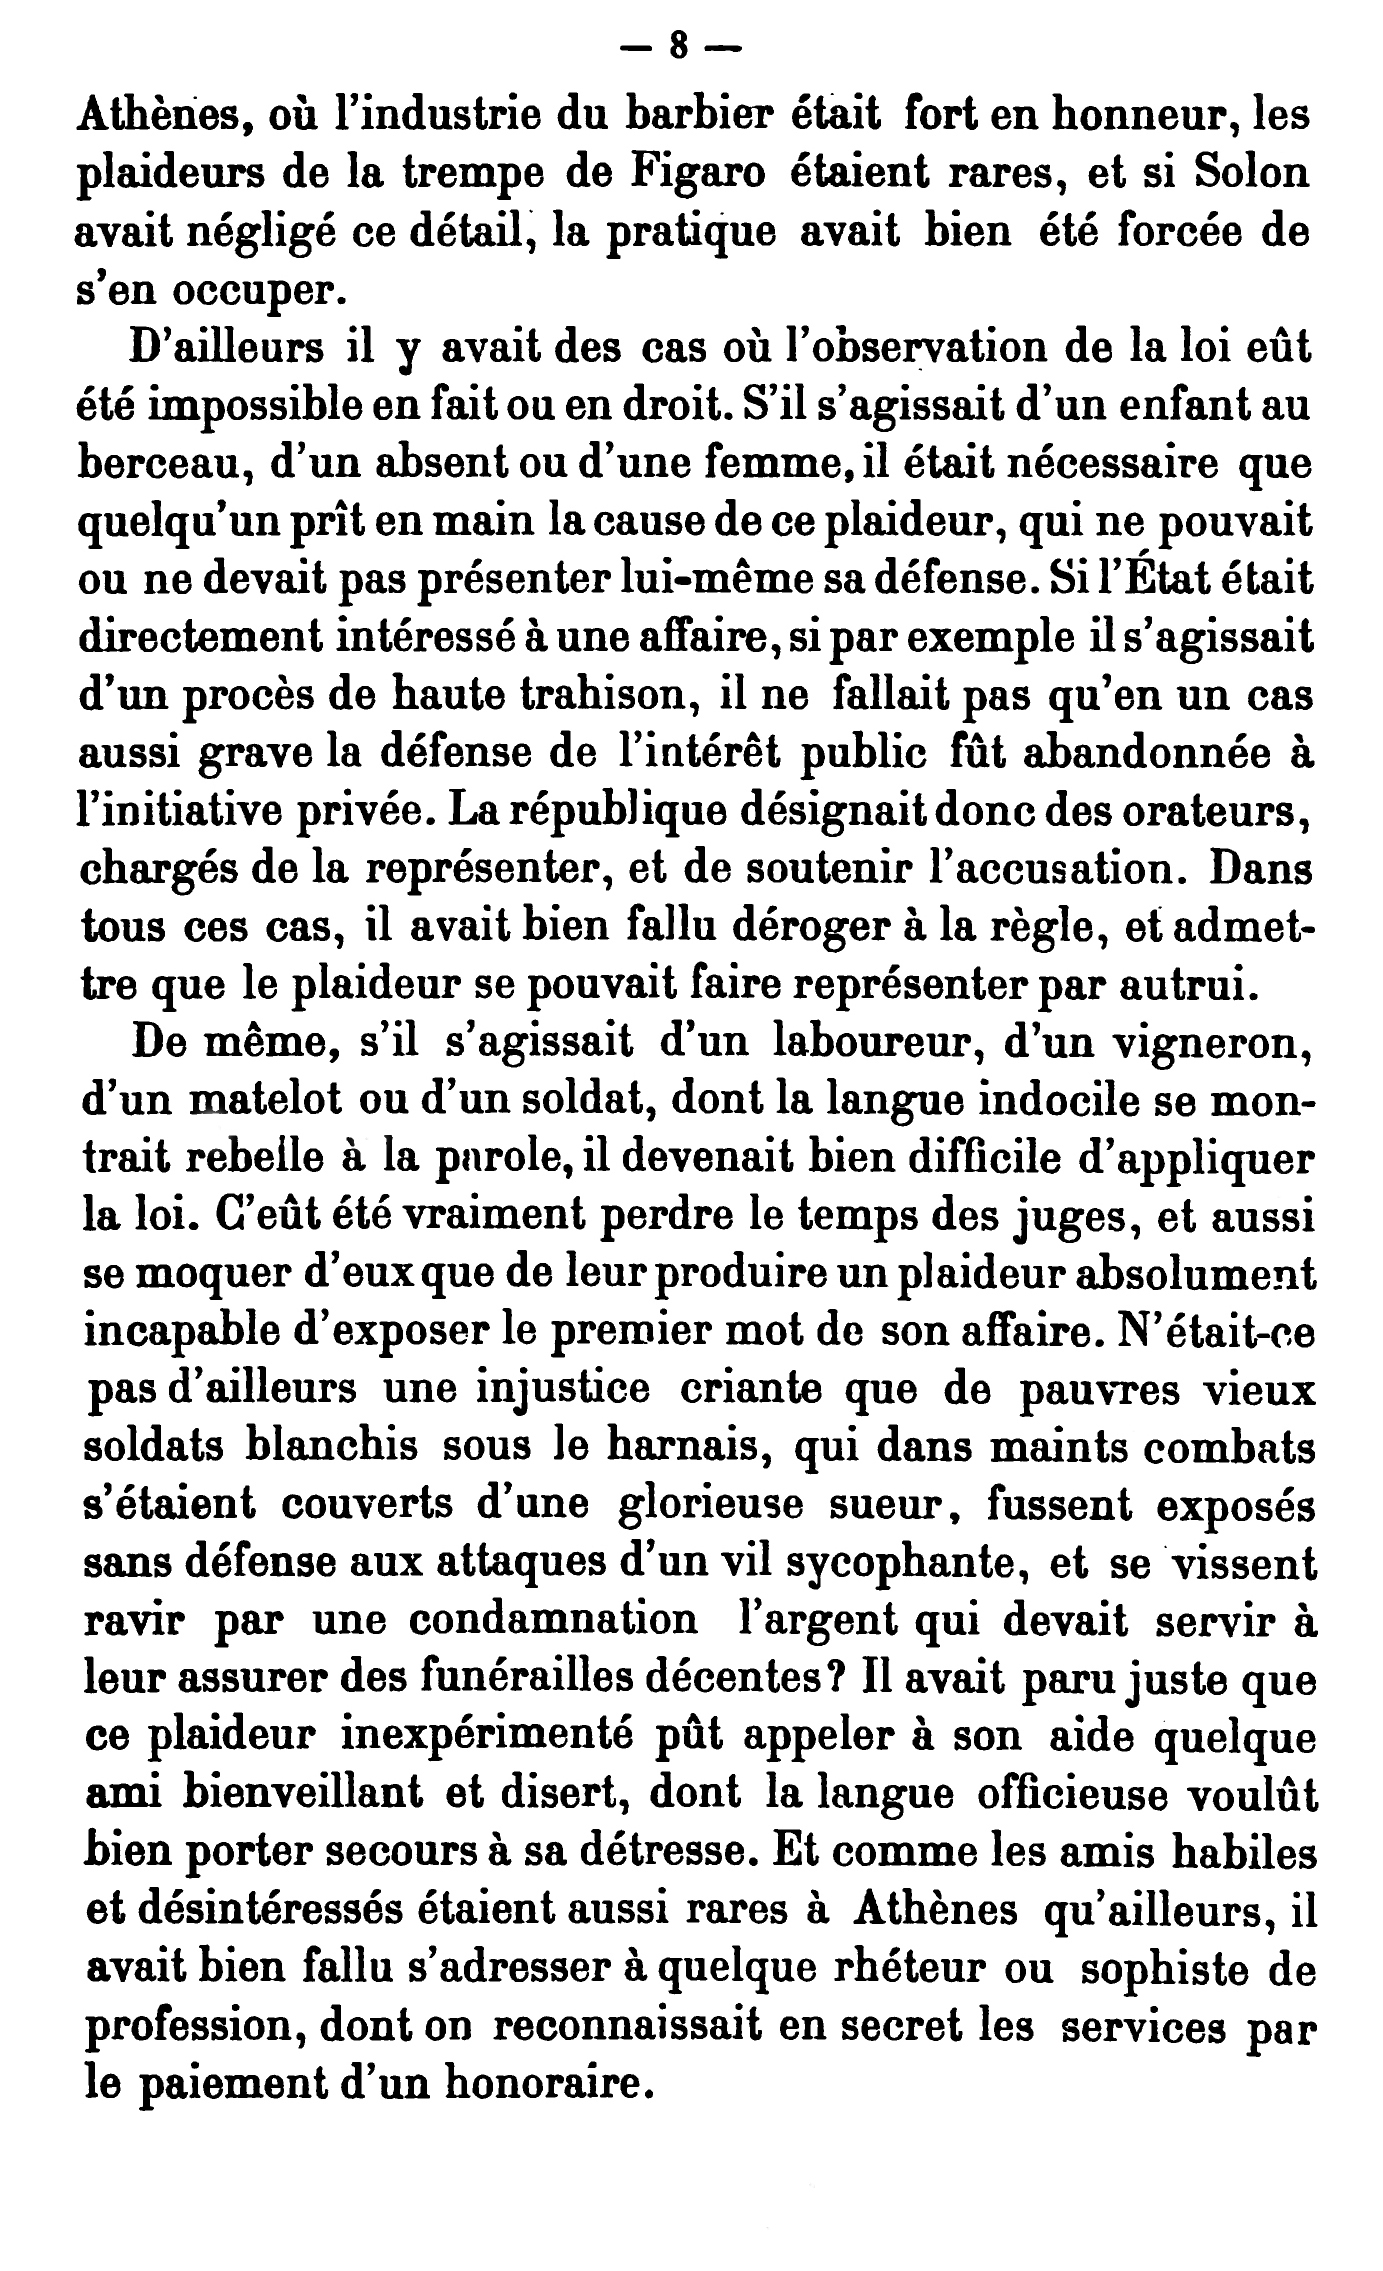 File Example Of French Spaced Text